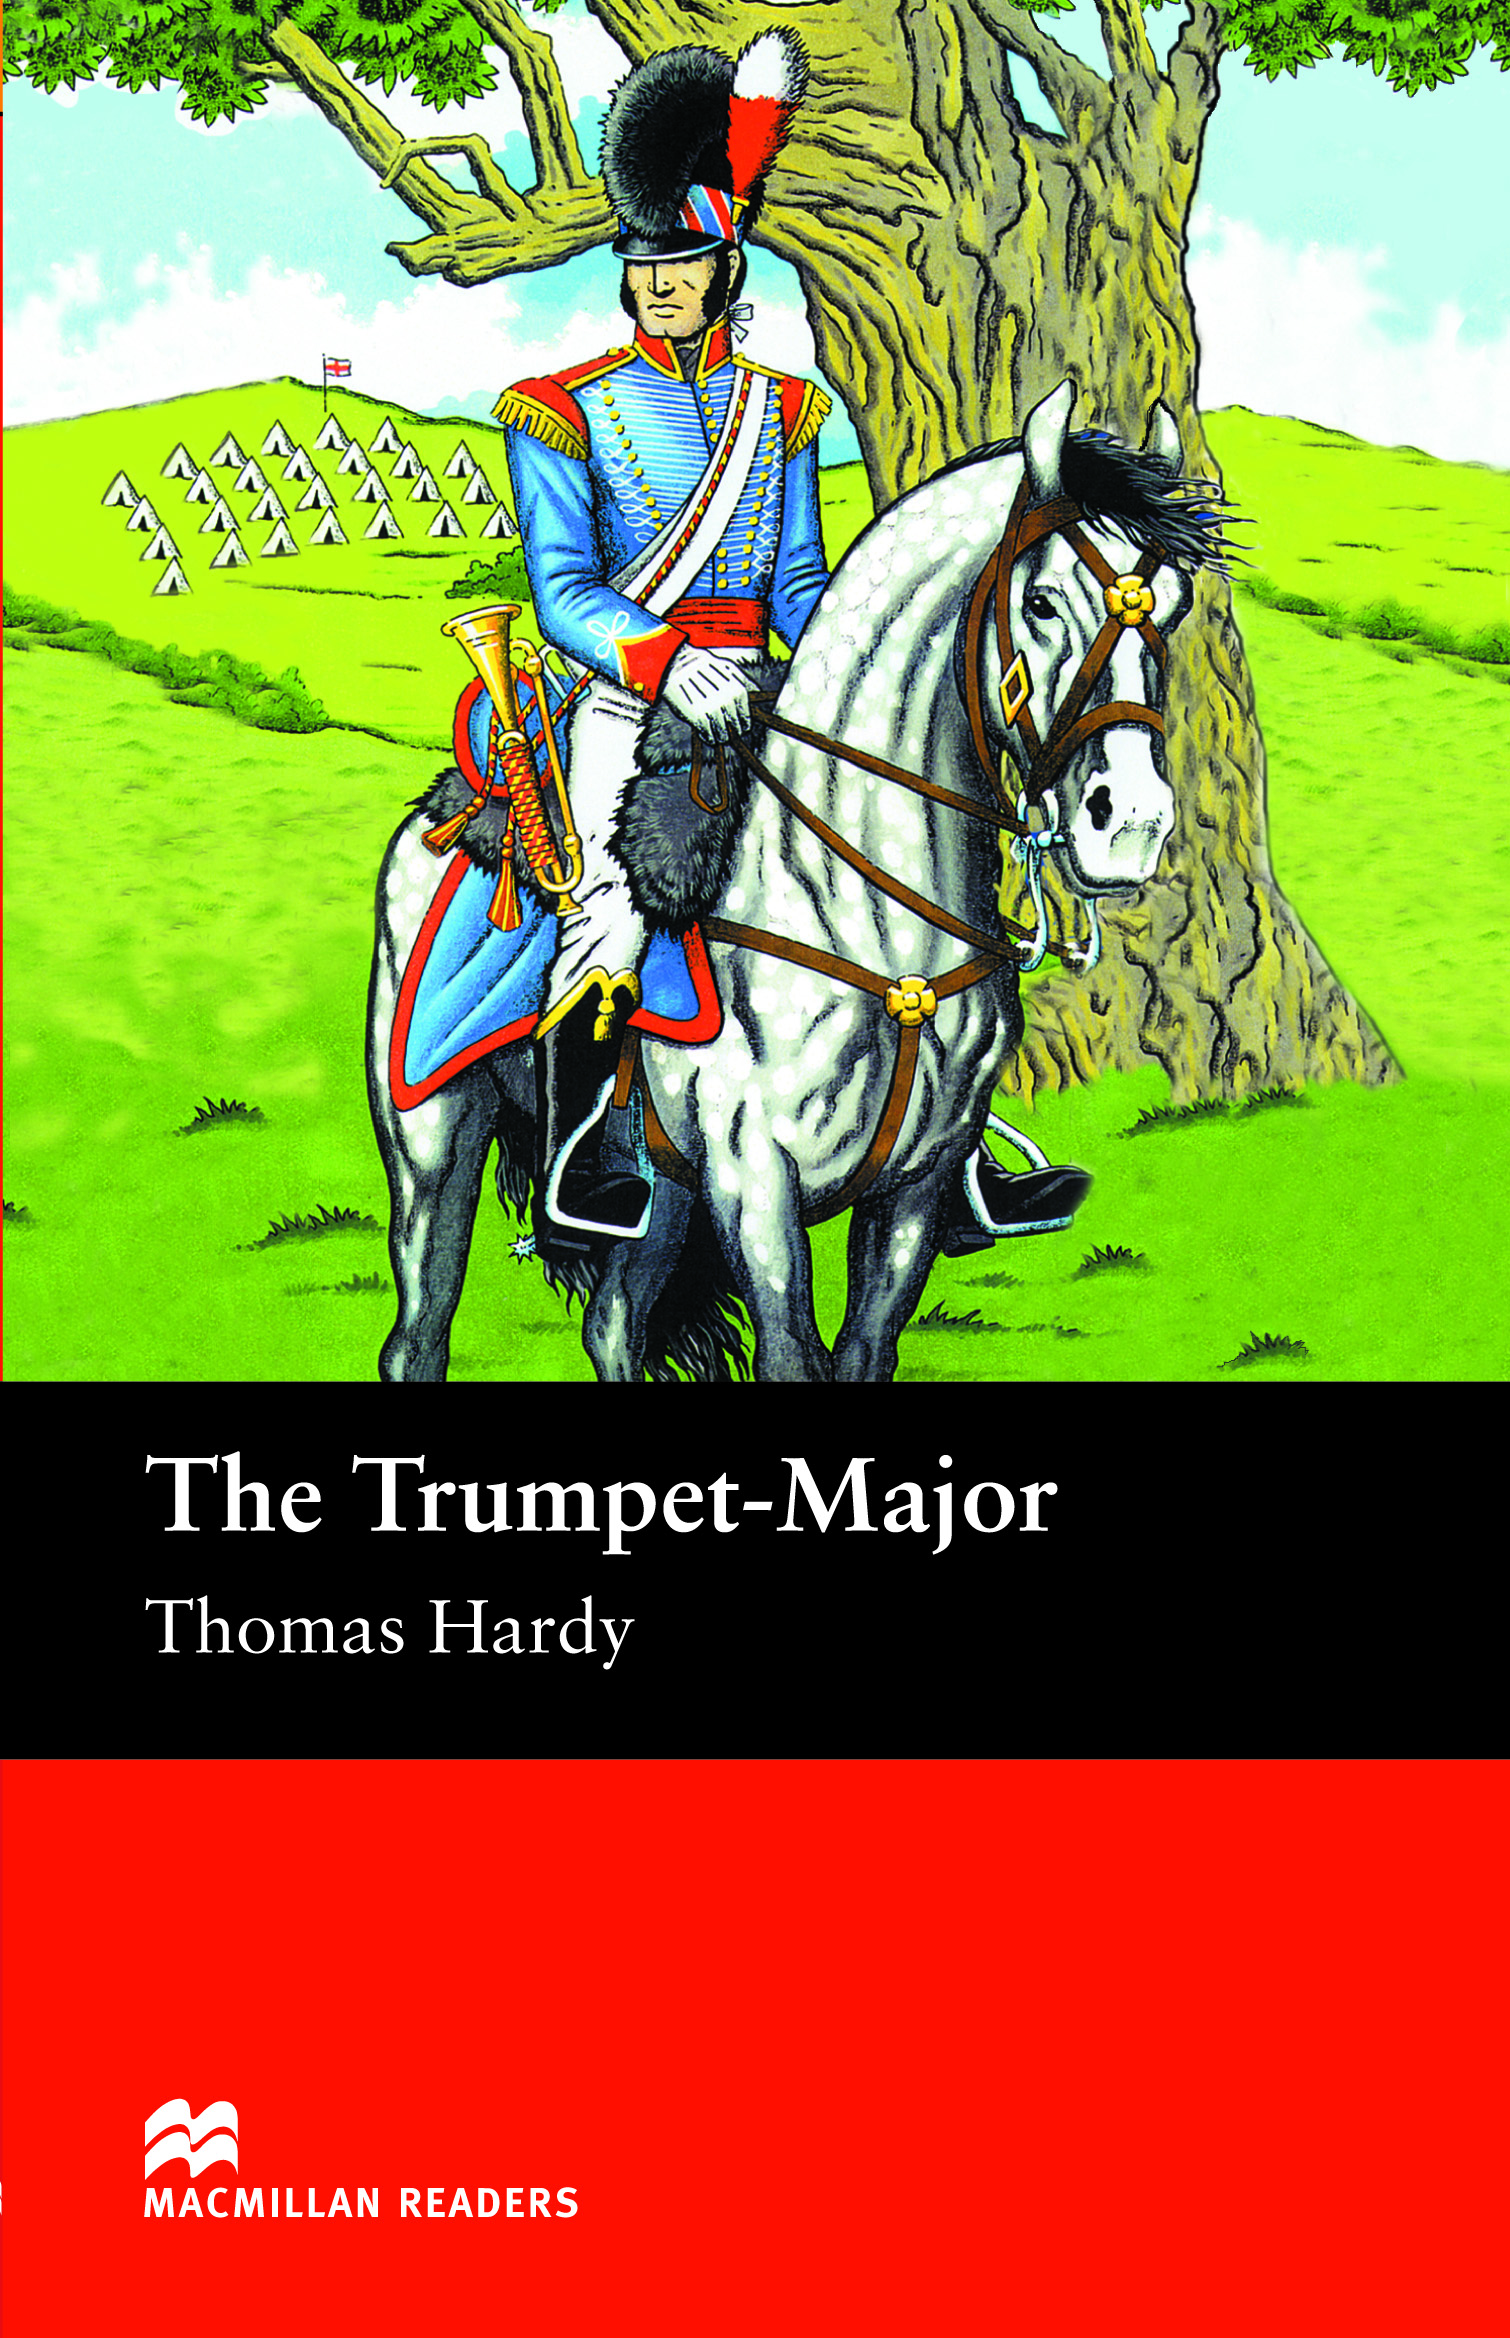 Macmillan Readers: The Trumpet-Major